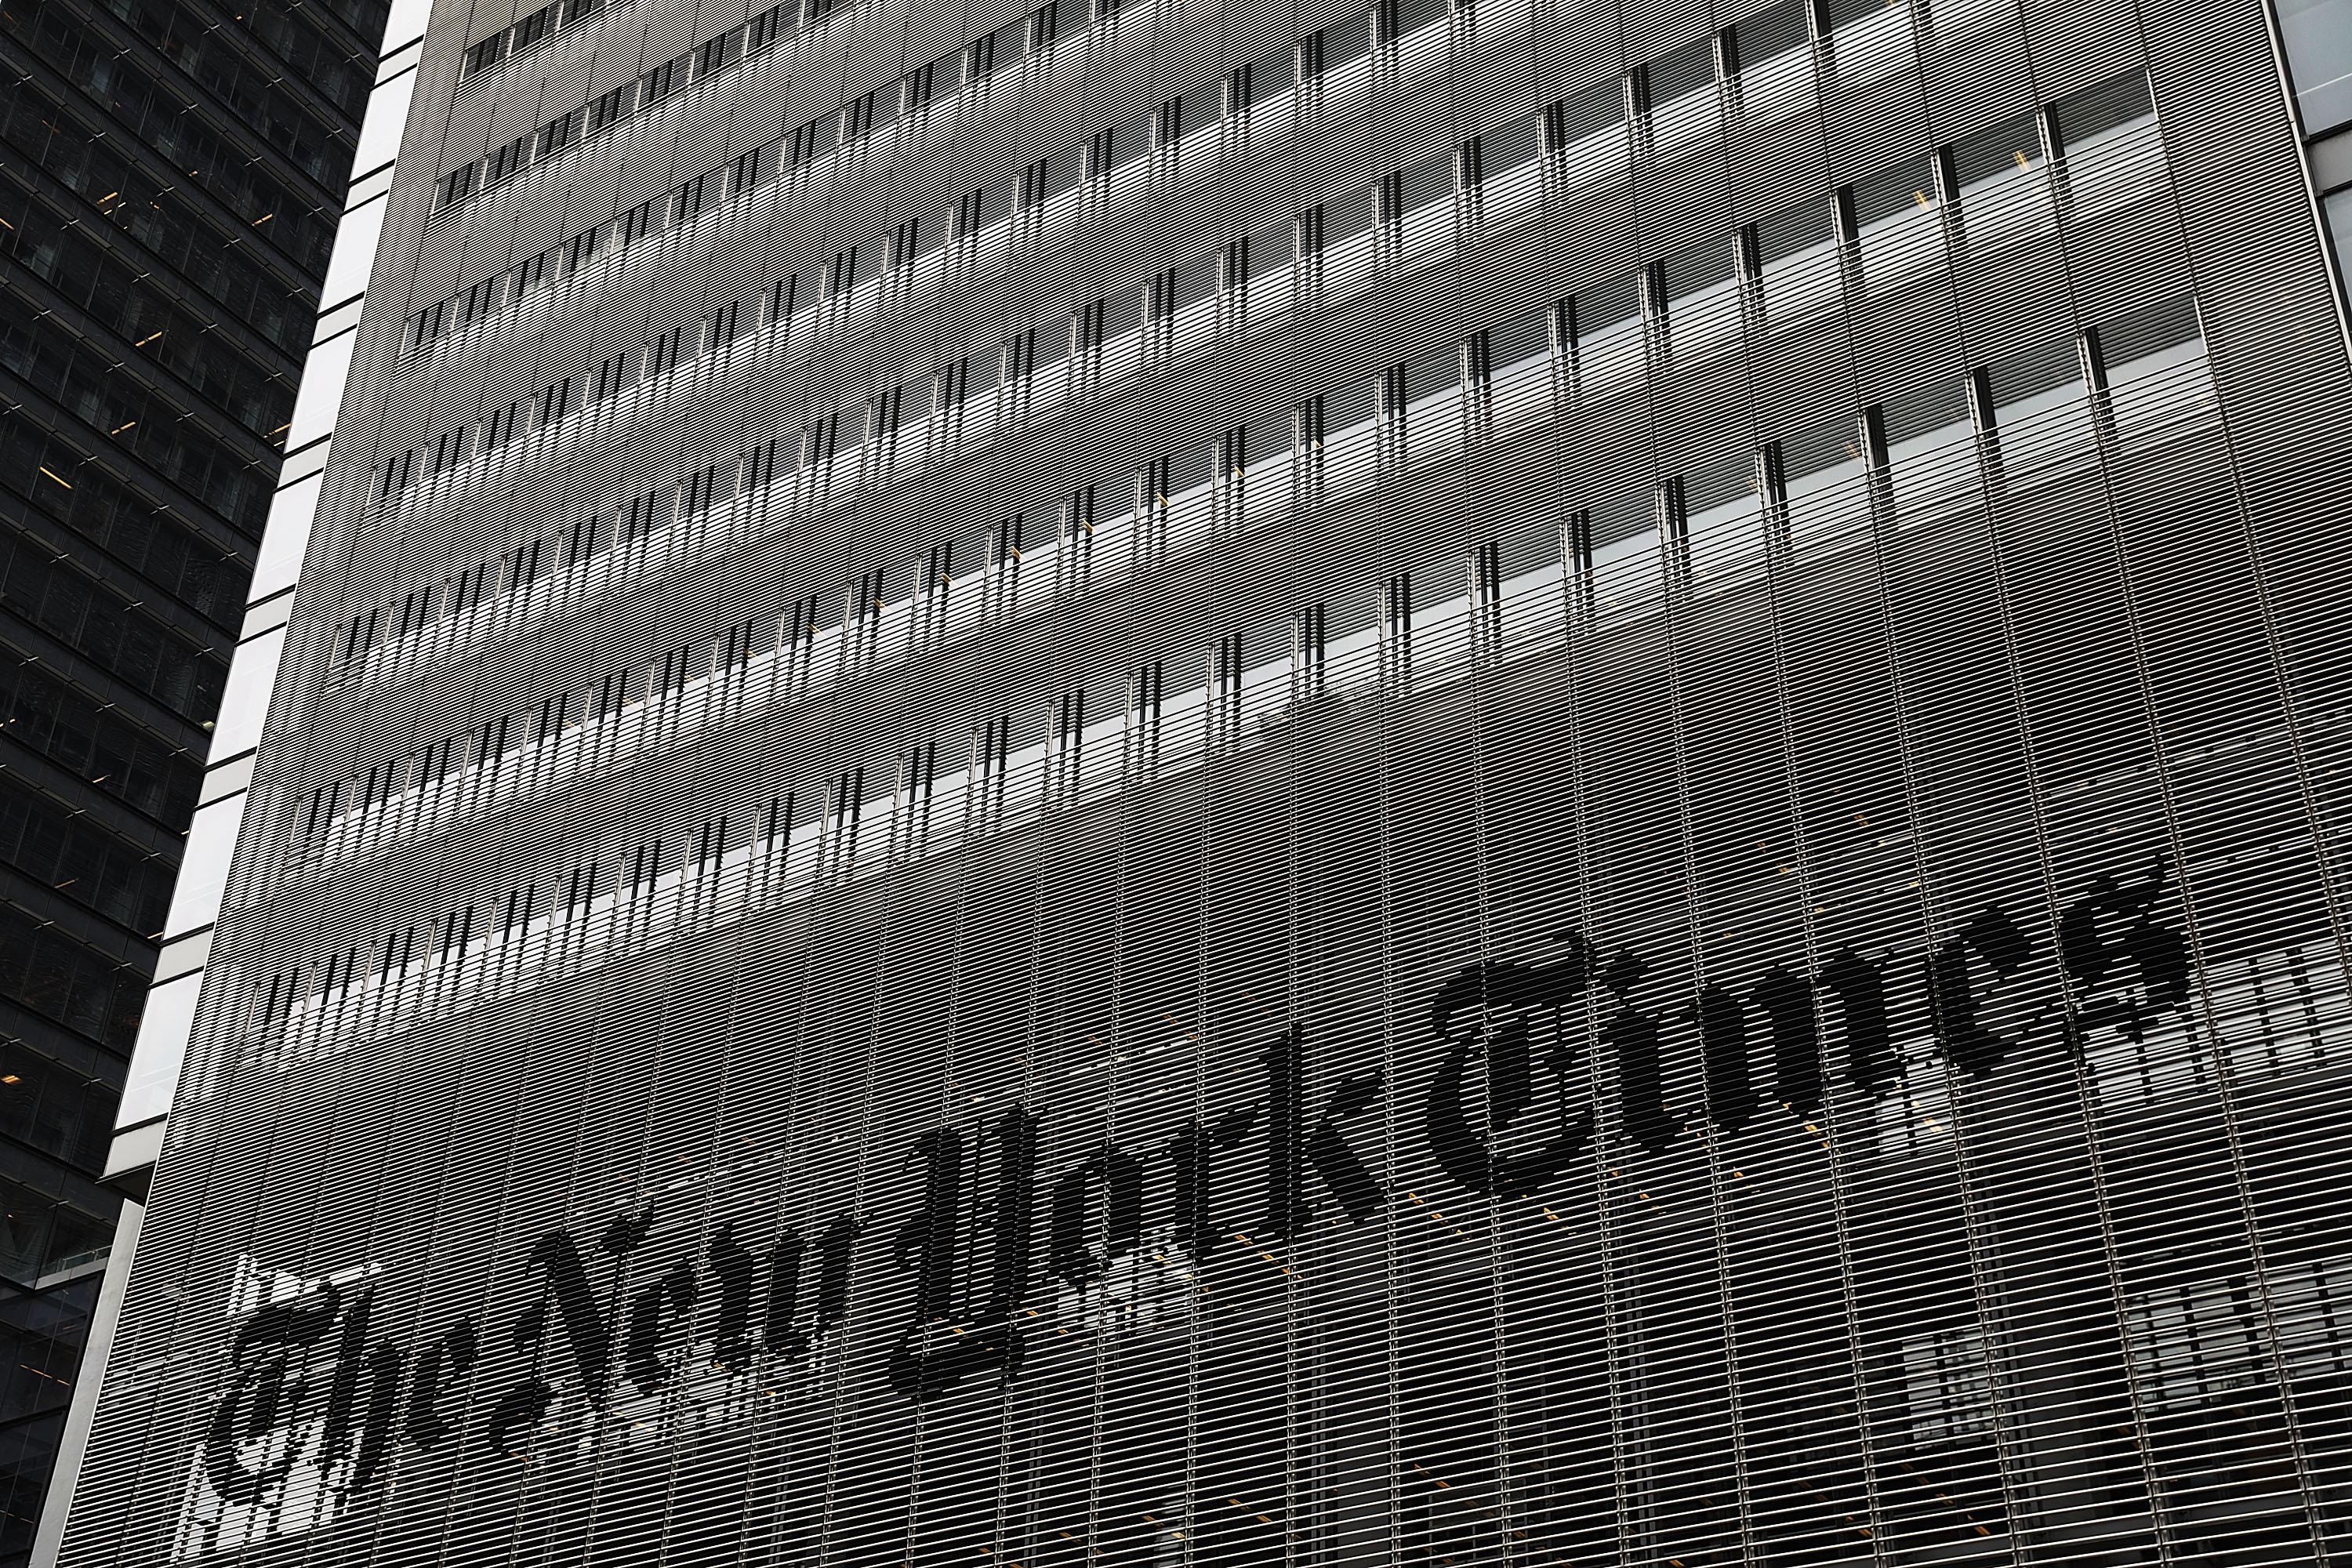 The New York Times fires opinion writer after backlash over 'faggot' tweets